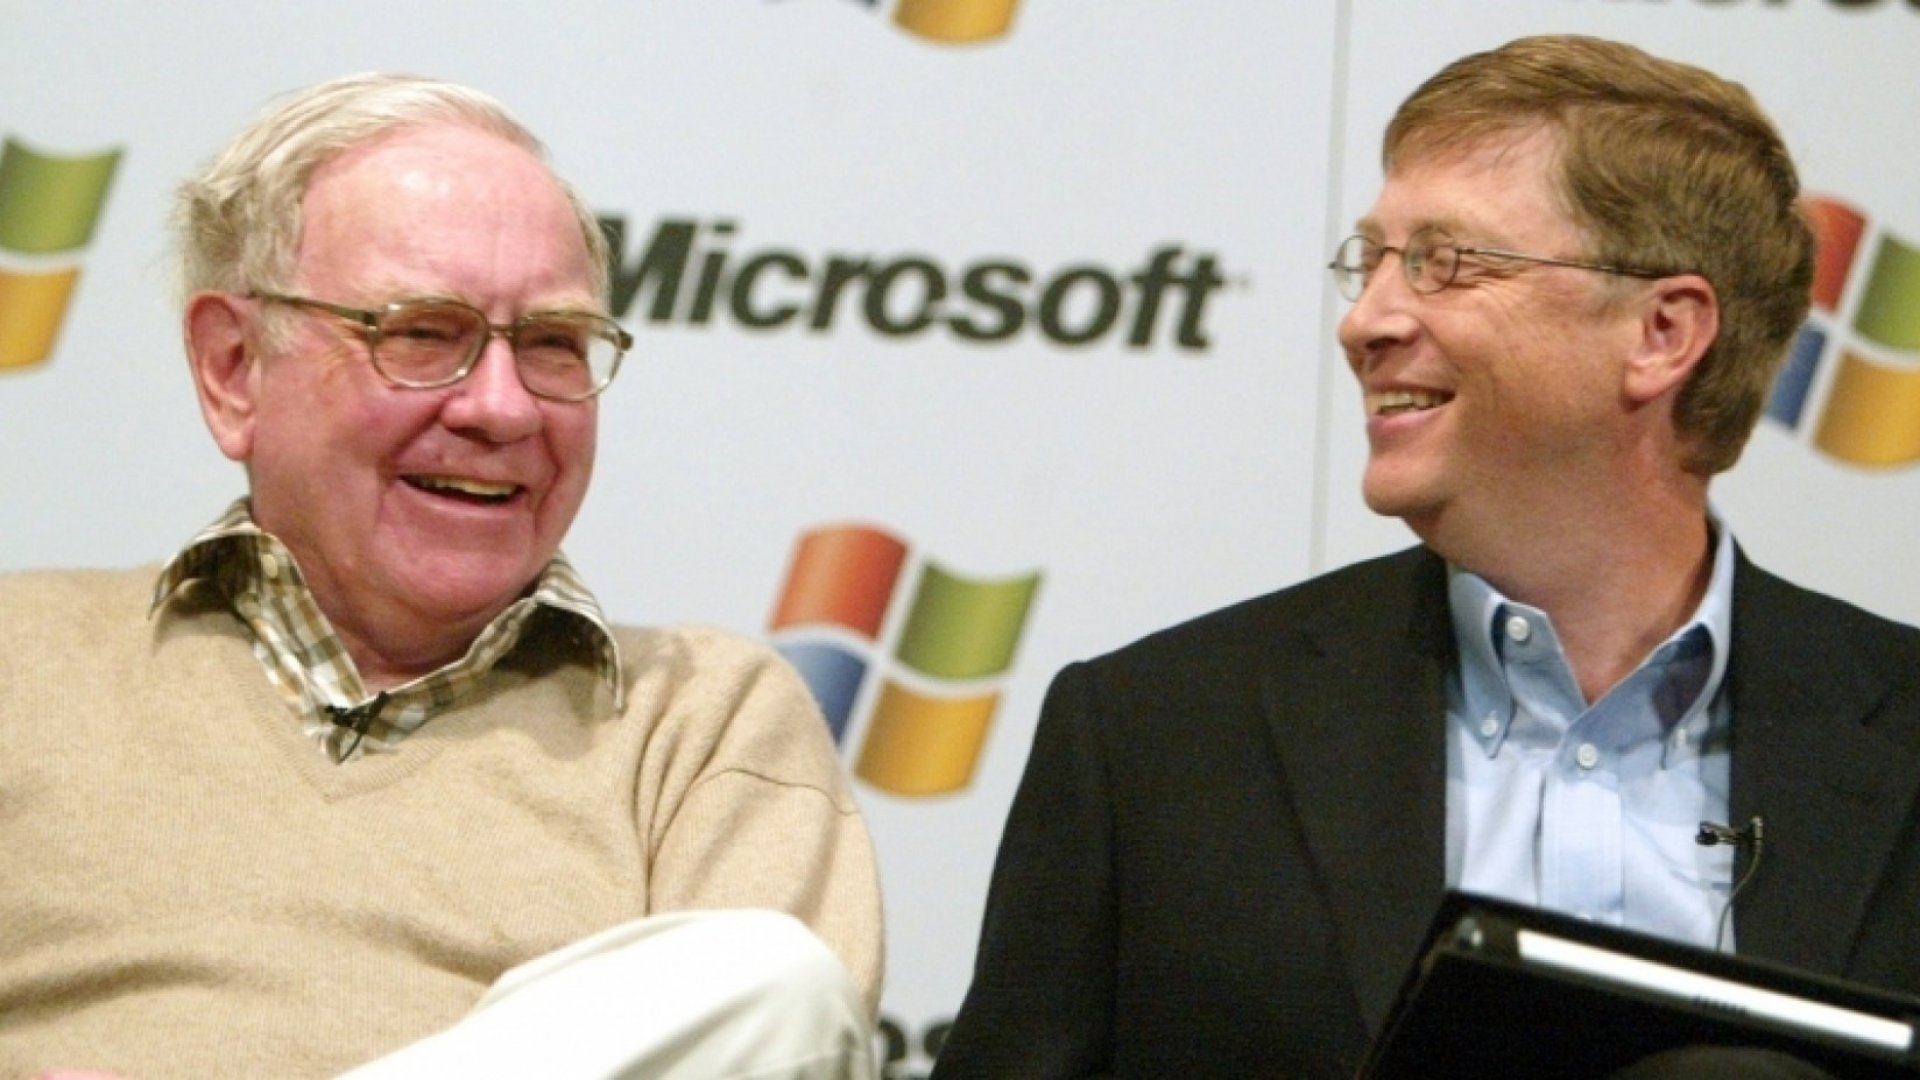 The Road to Success: An Interview With Bill Gates and Warren Buffett